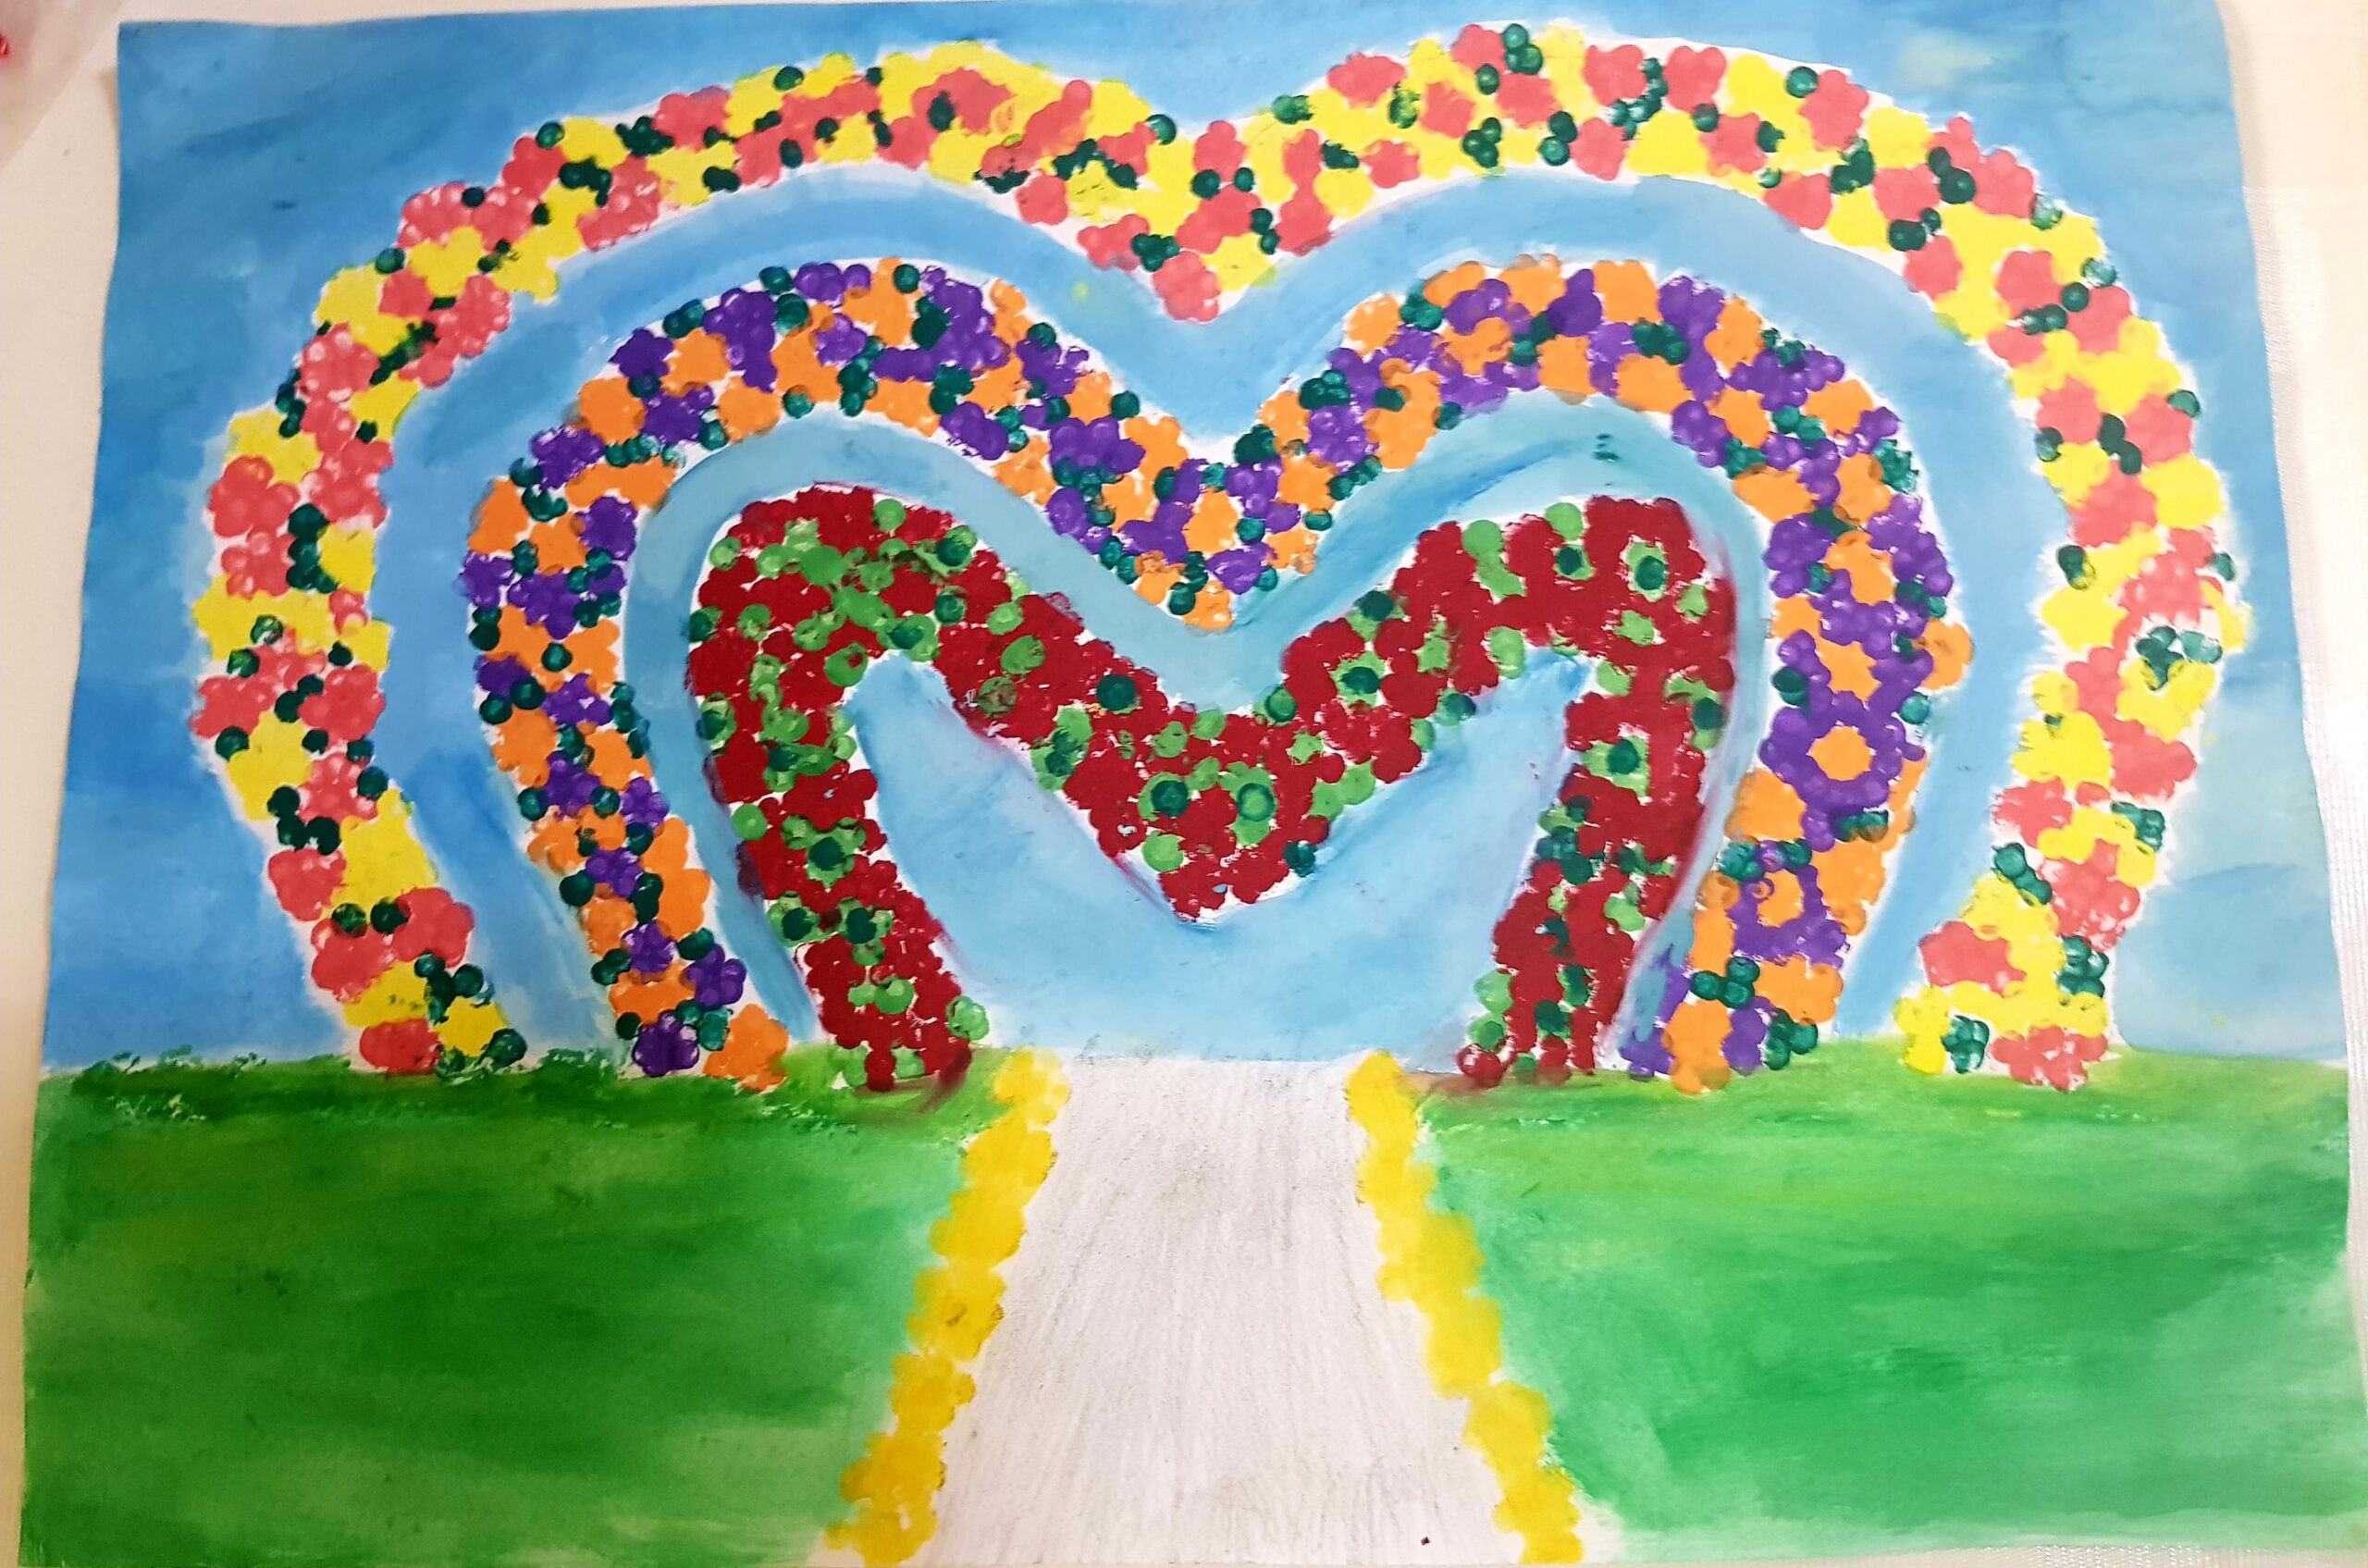 Miracle Garden by Gaile Roque